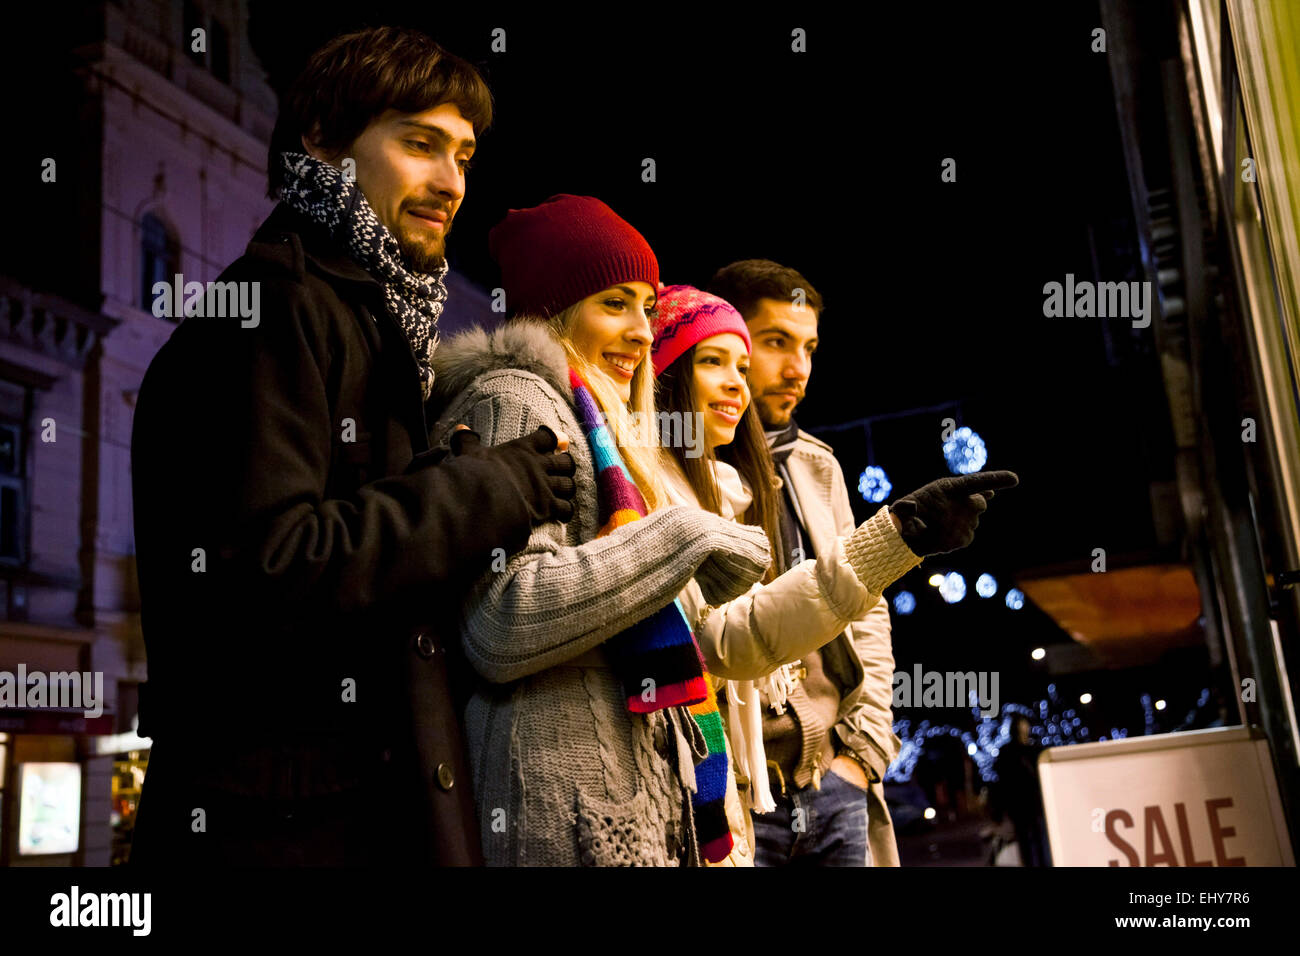 Group of friends at Christmas Market - Stock Image